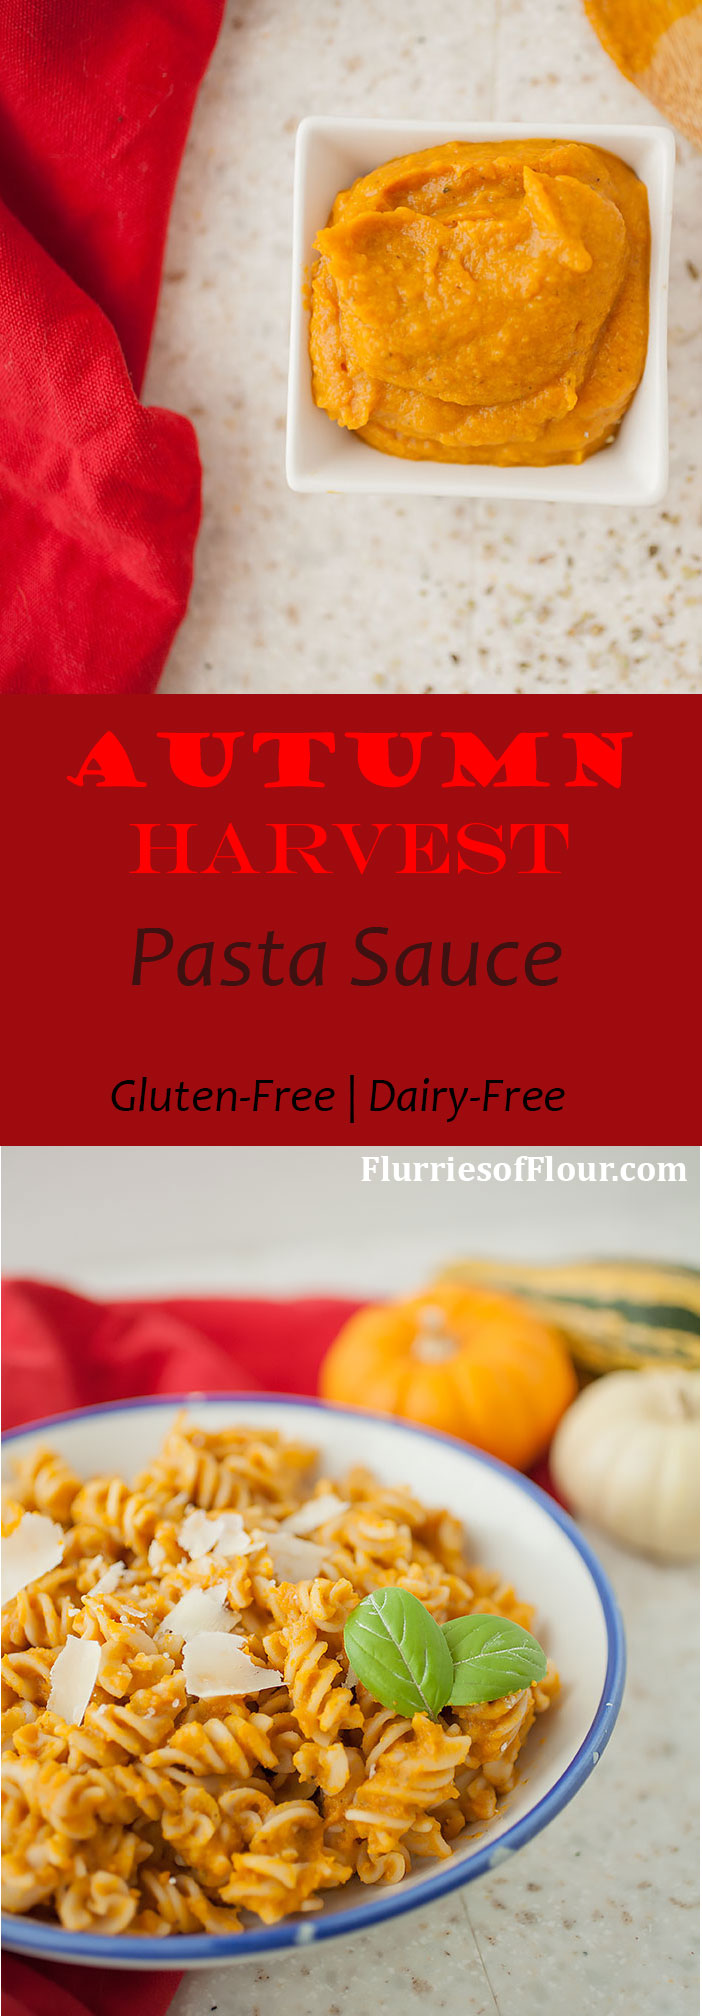 Simple, creamy, and delicious, this autumn harvest pasta sauce is gluten-free, dairy-free, and full of good-for-you pumpkin and squash with added creaminess from coconut milk! It also makes a beautiful base for further flavors and additions, and stores perfectly in the freezer!